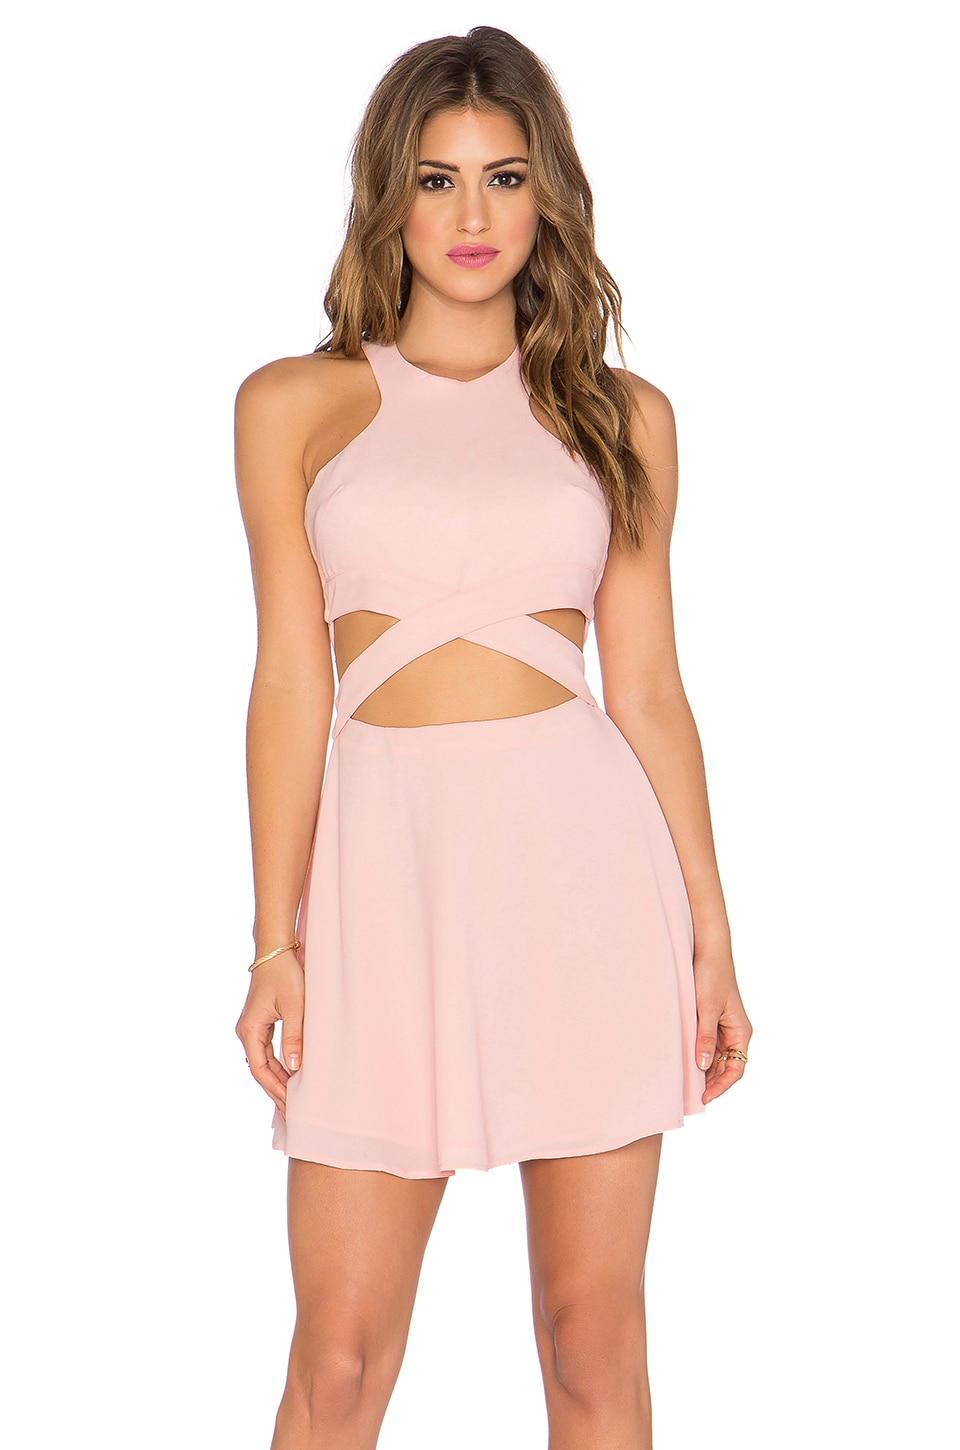 x Naven Twins Chromat Fit & Flare Dress by NBD